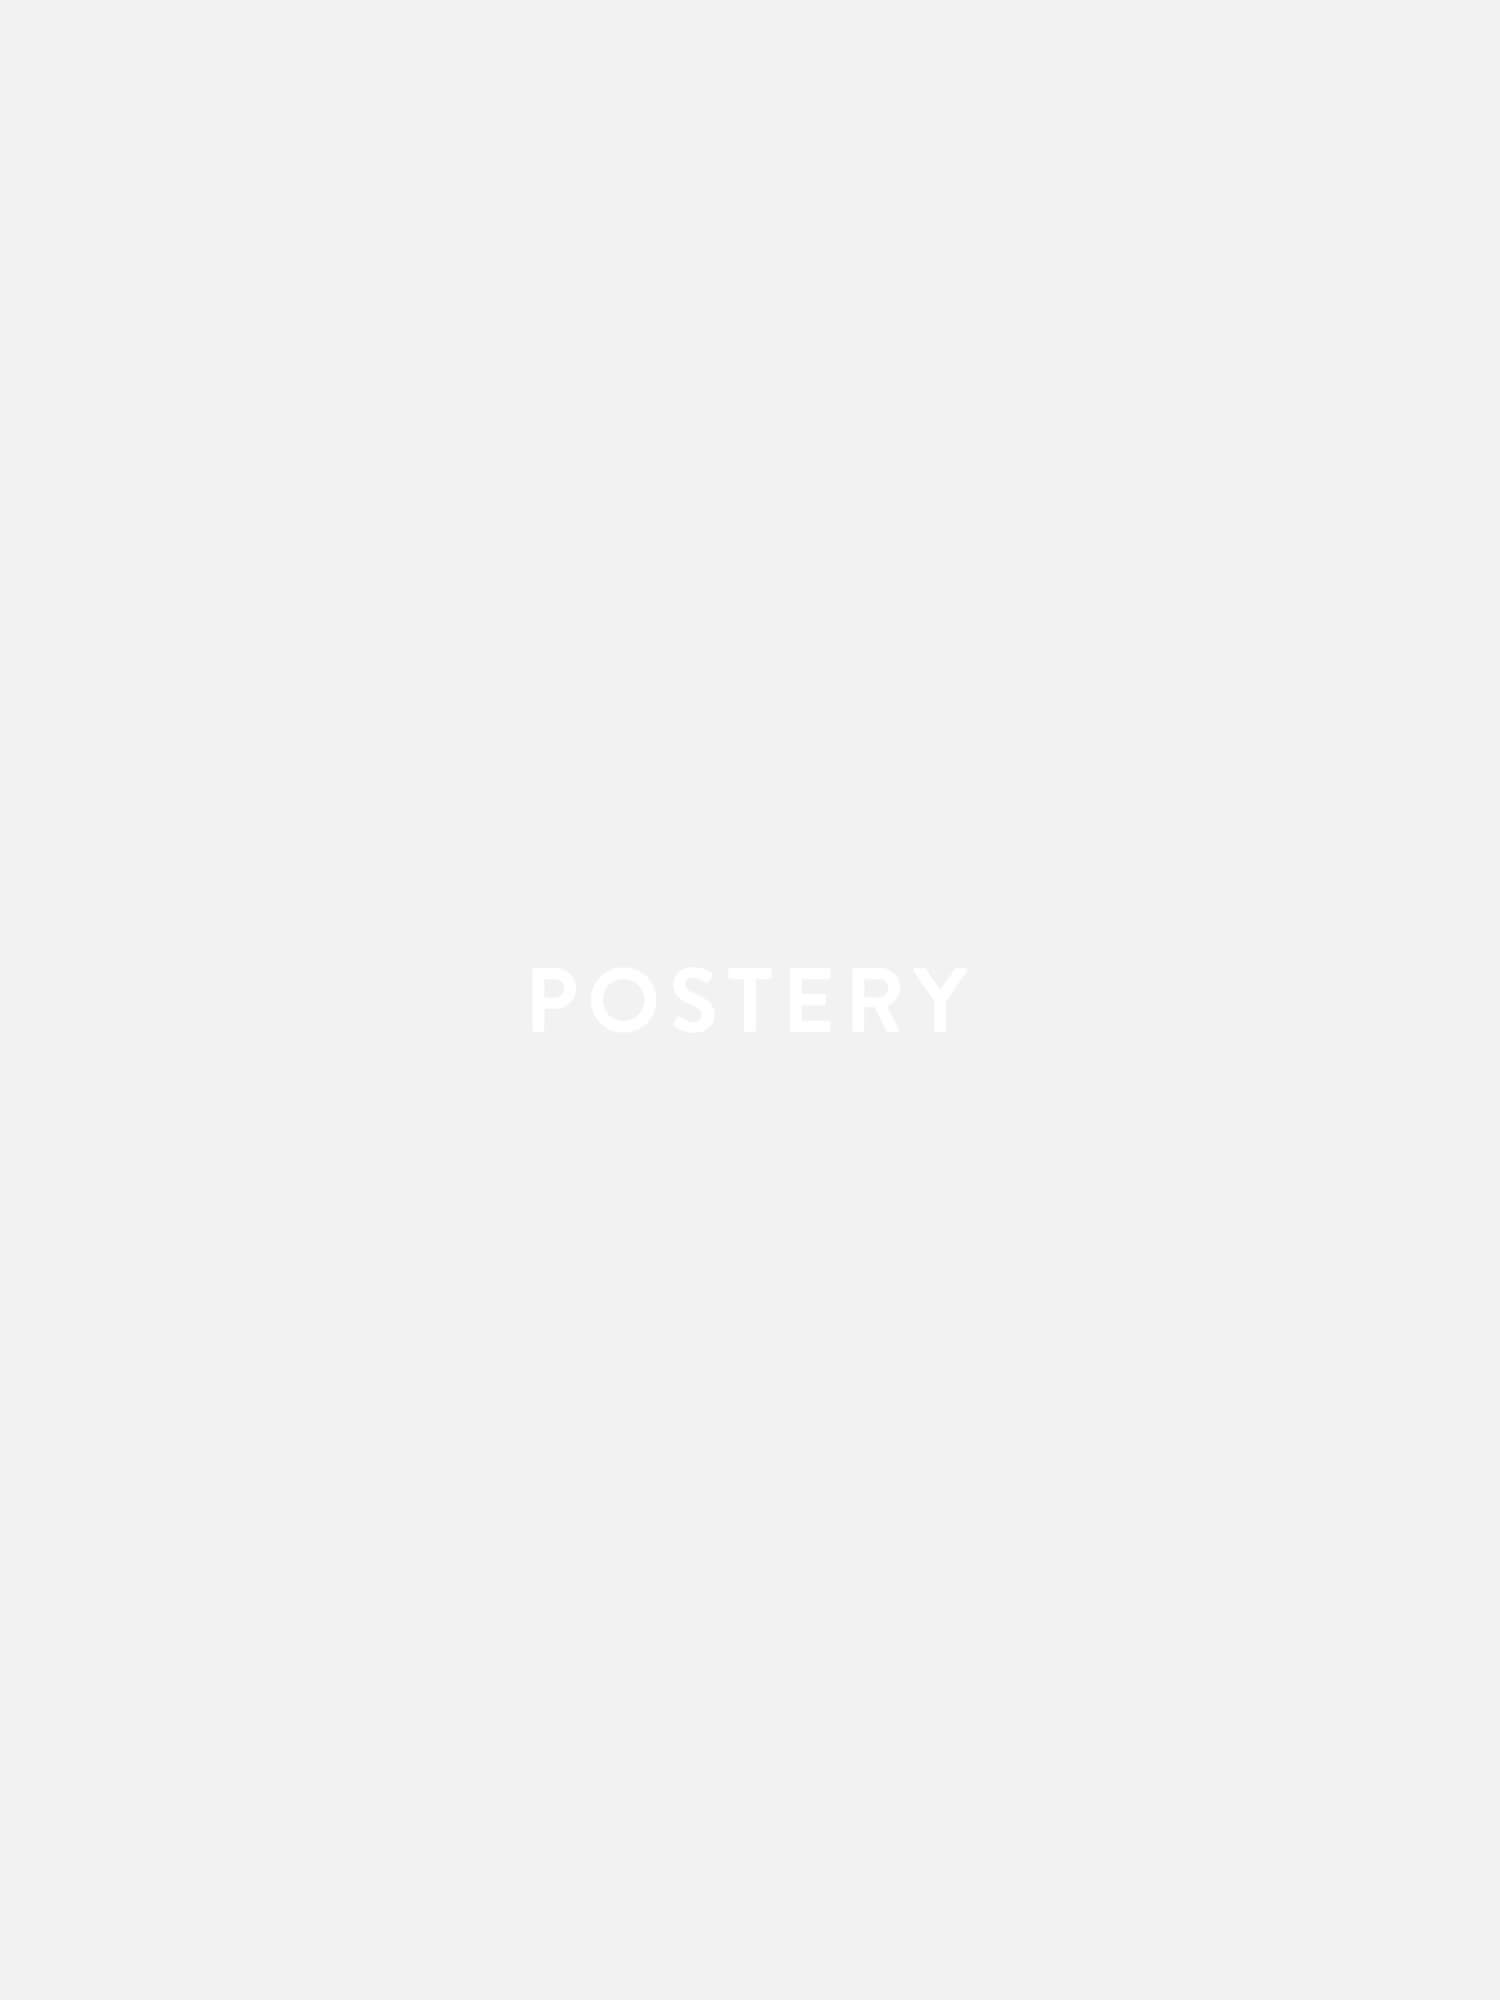 Breakfast in Paris Poster